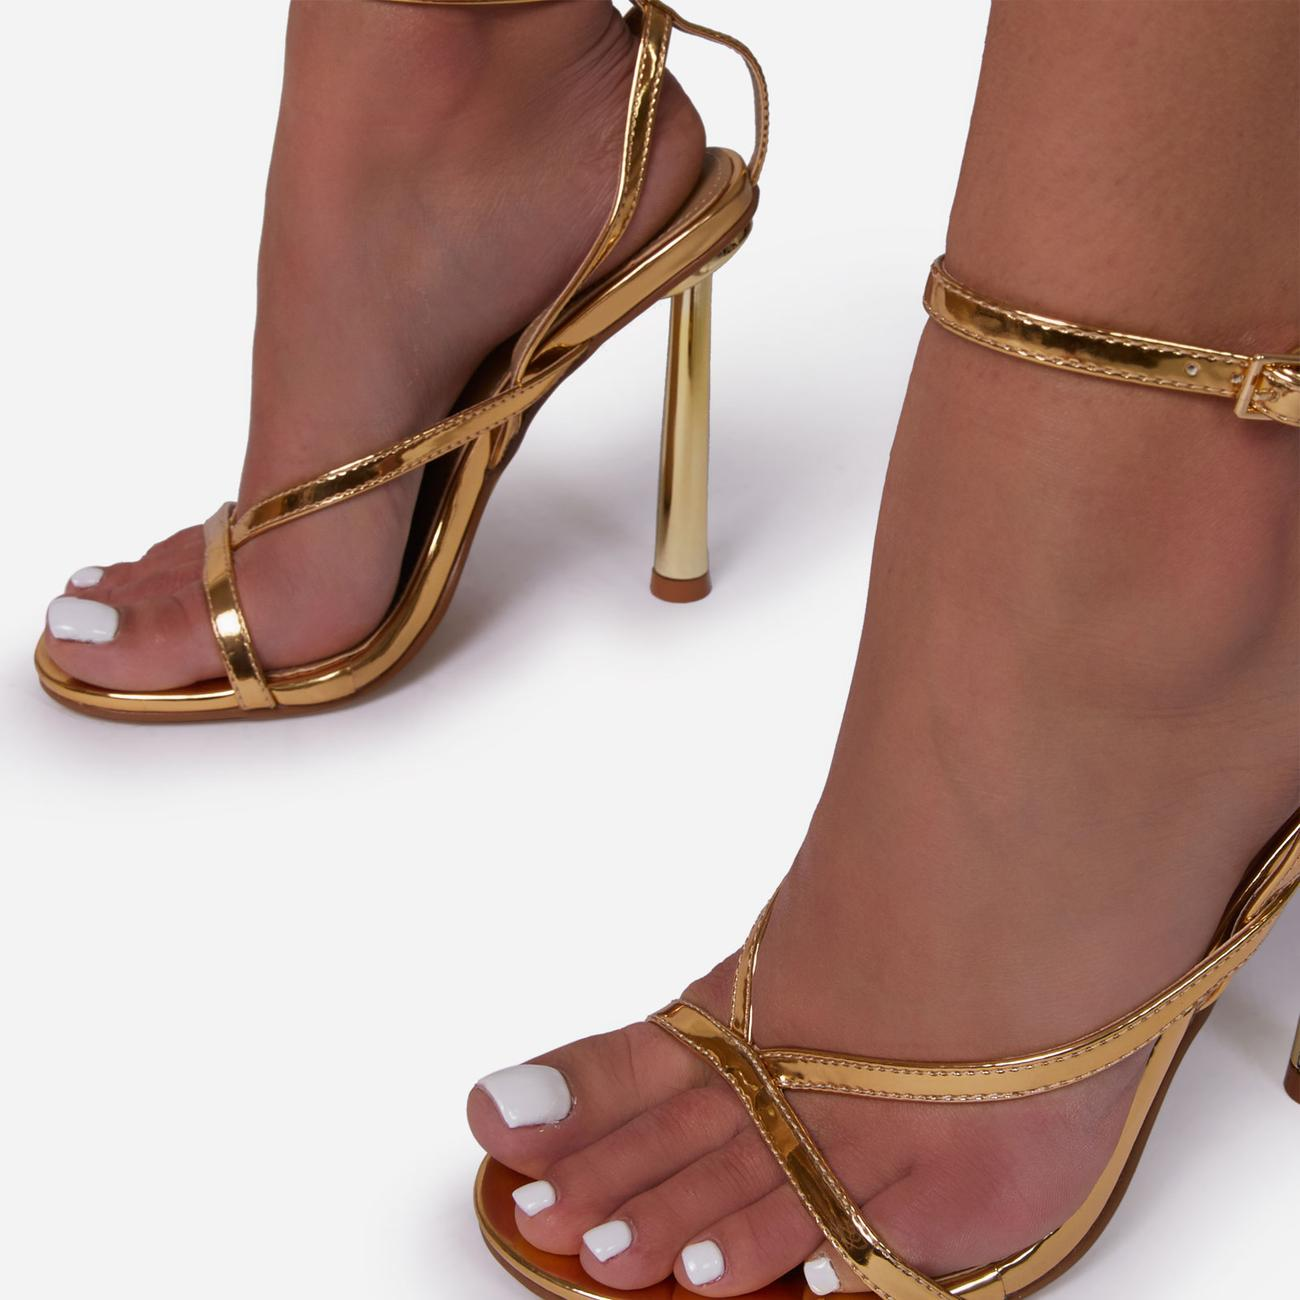 Yasmin Strappy Heel In Metallic Gold Faux Leather Image 3